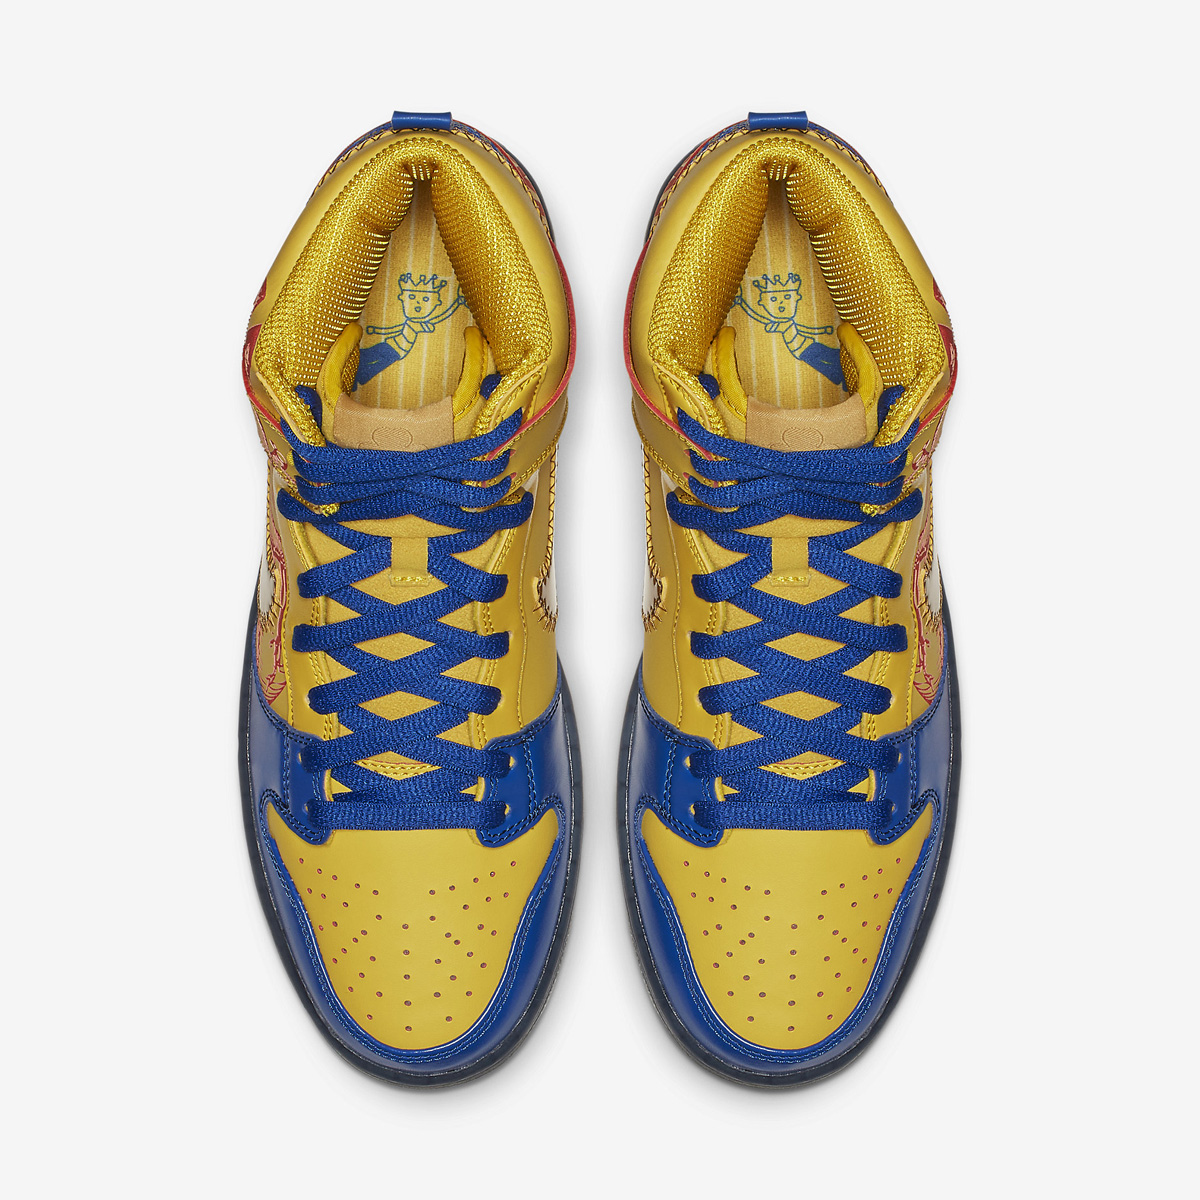 new products 8a554 32aa9 2012's Nike SB Dunk Will Be the Next Doernbecher to Re ...